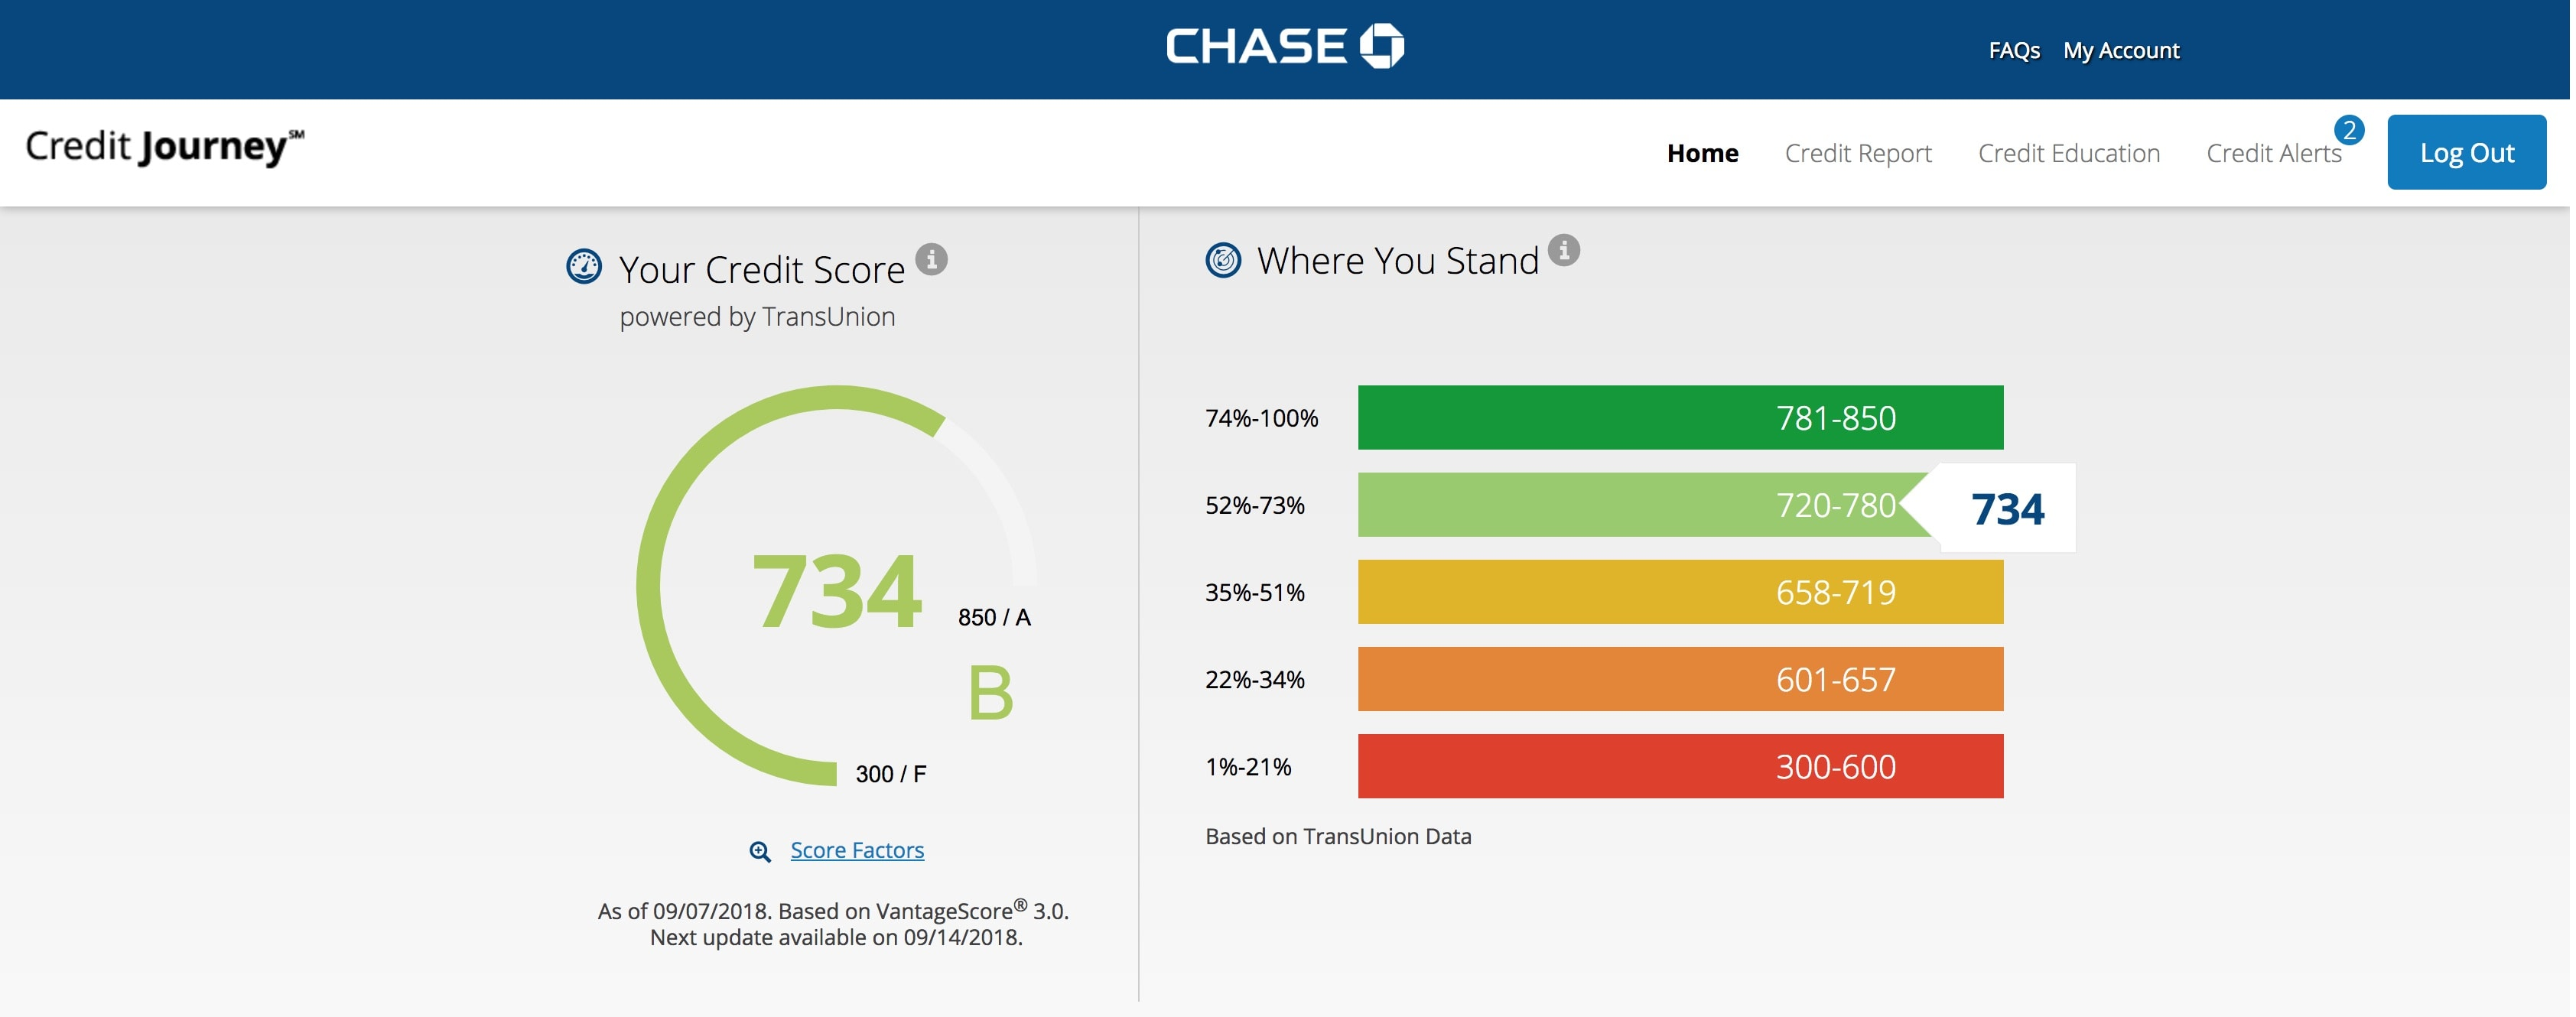 Credit Journey by Chase.